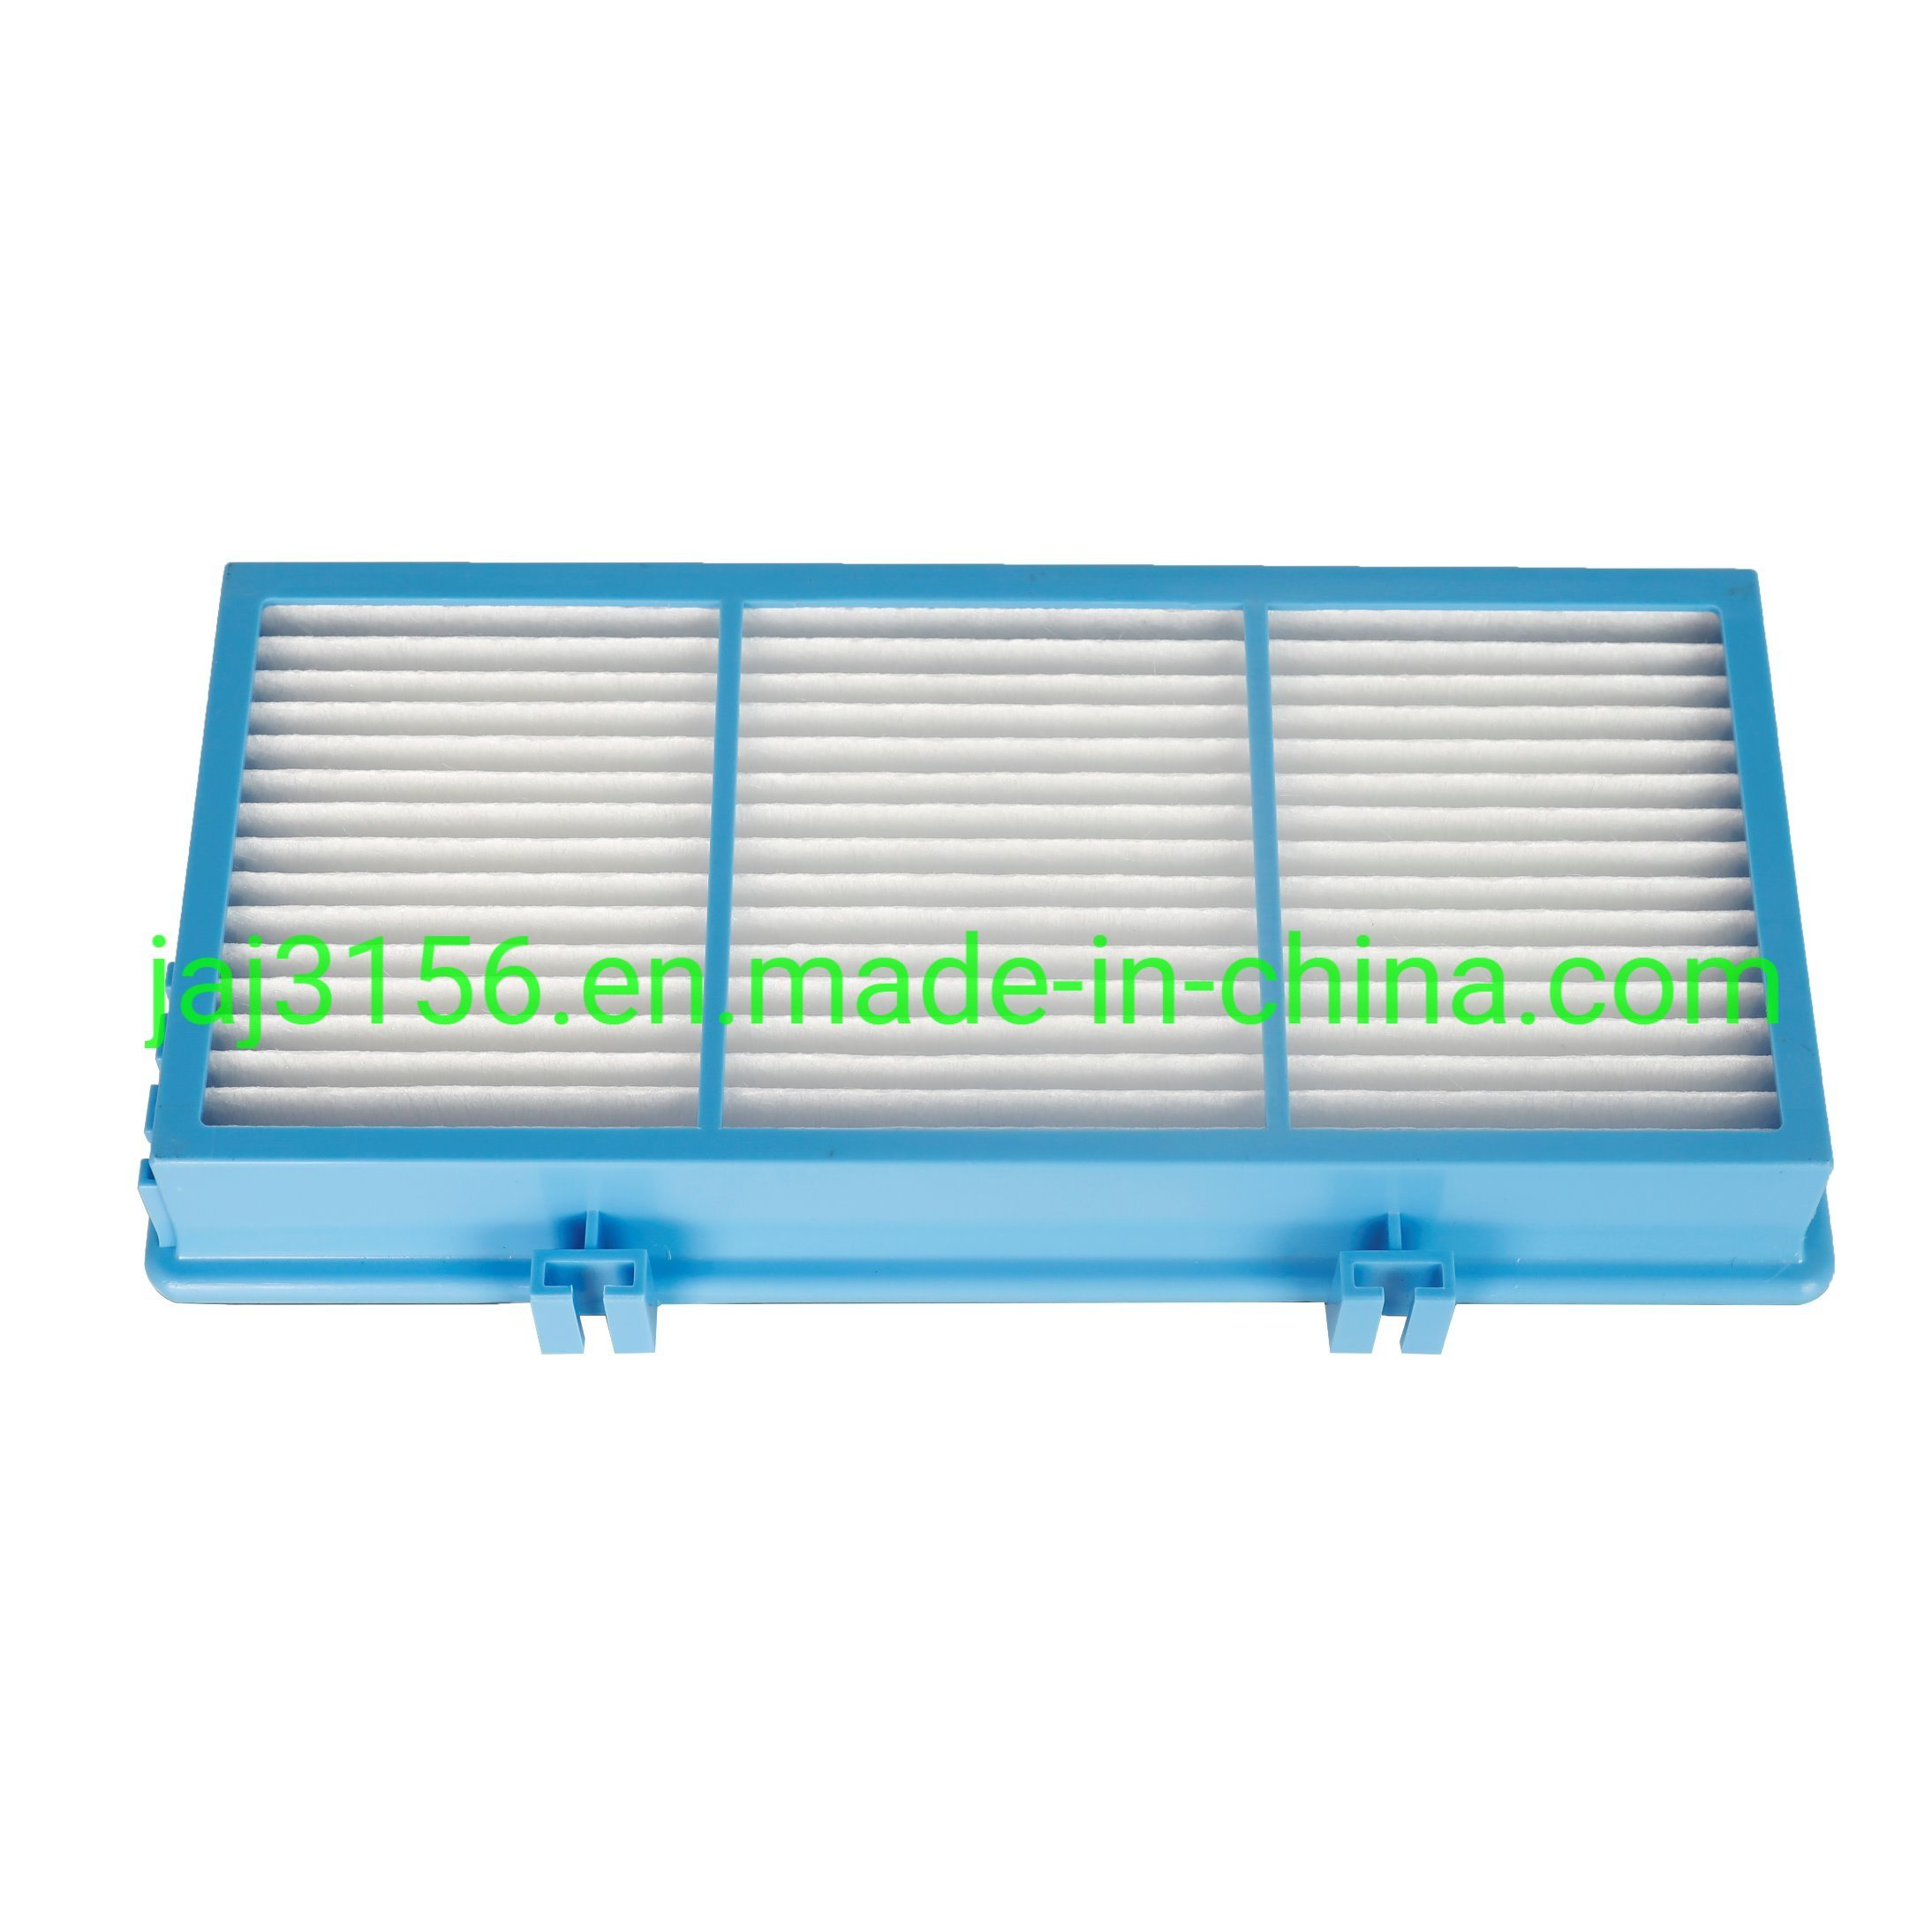 HAPF30AT For Replacement HEPA Filter For Holmes AER1 Series Total Air Filter